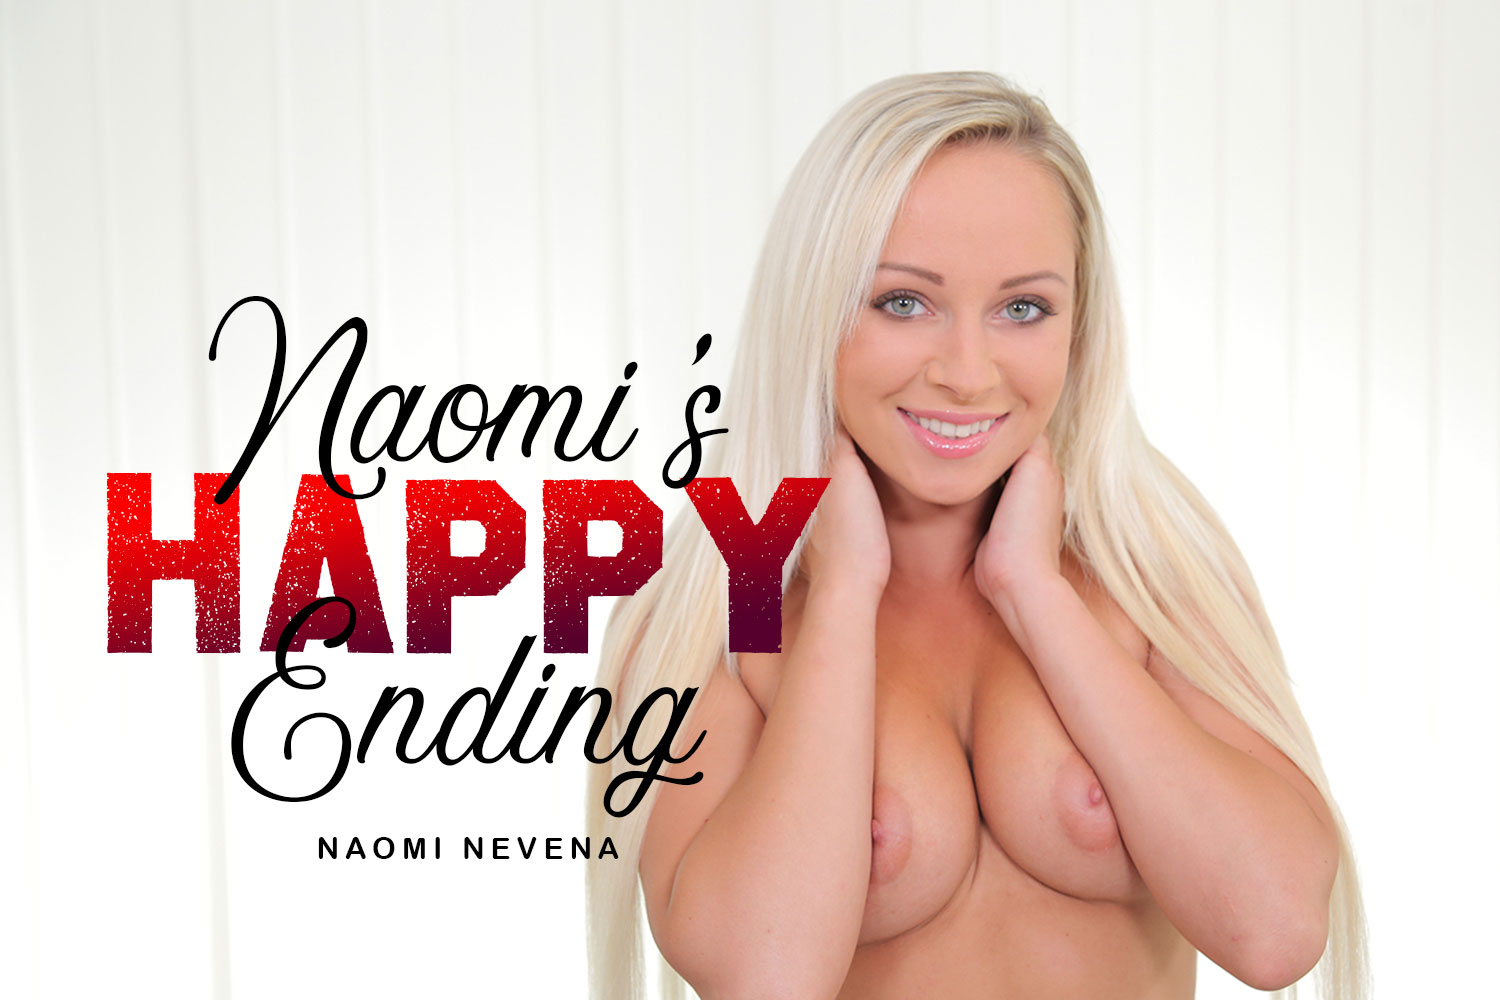 Naomi's Happy Ending VR Porn Video